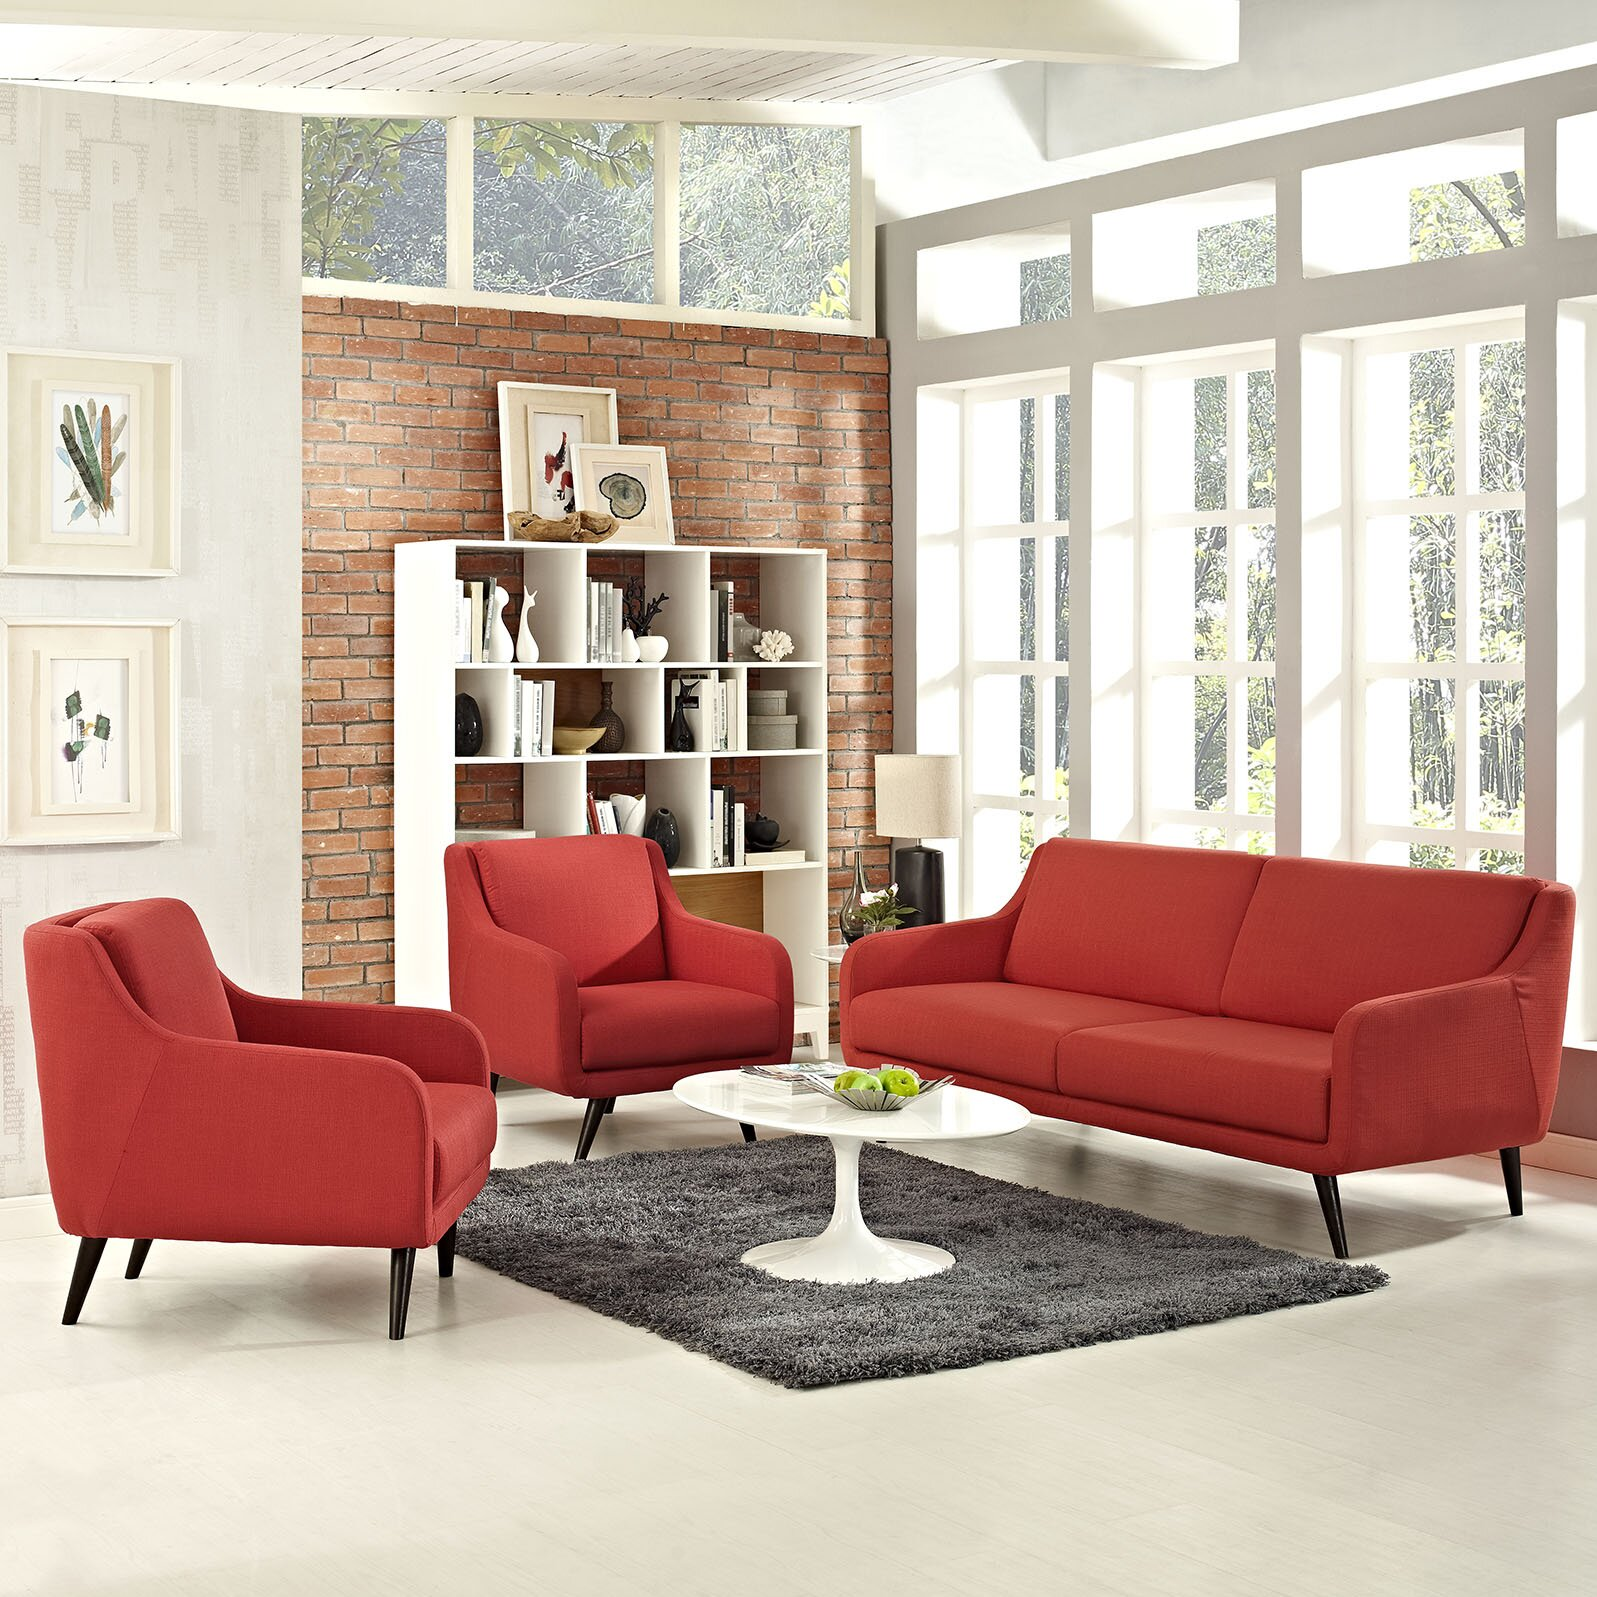 Modway verve 3 piece living room set wayfair for Living room 3 piece sets